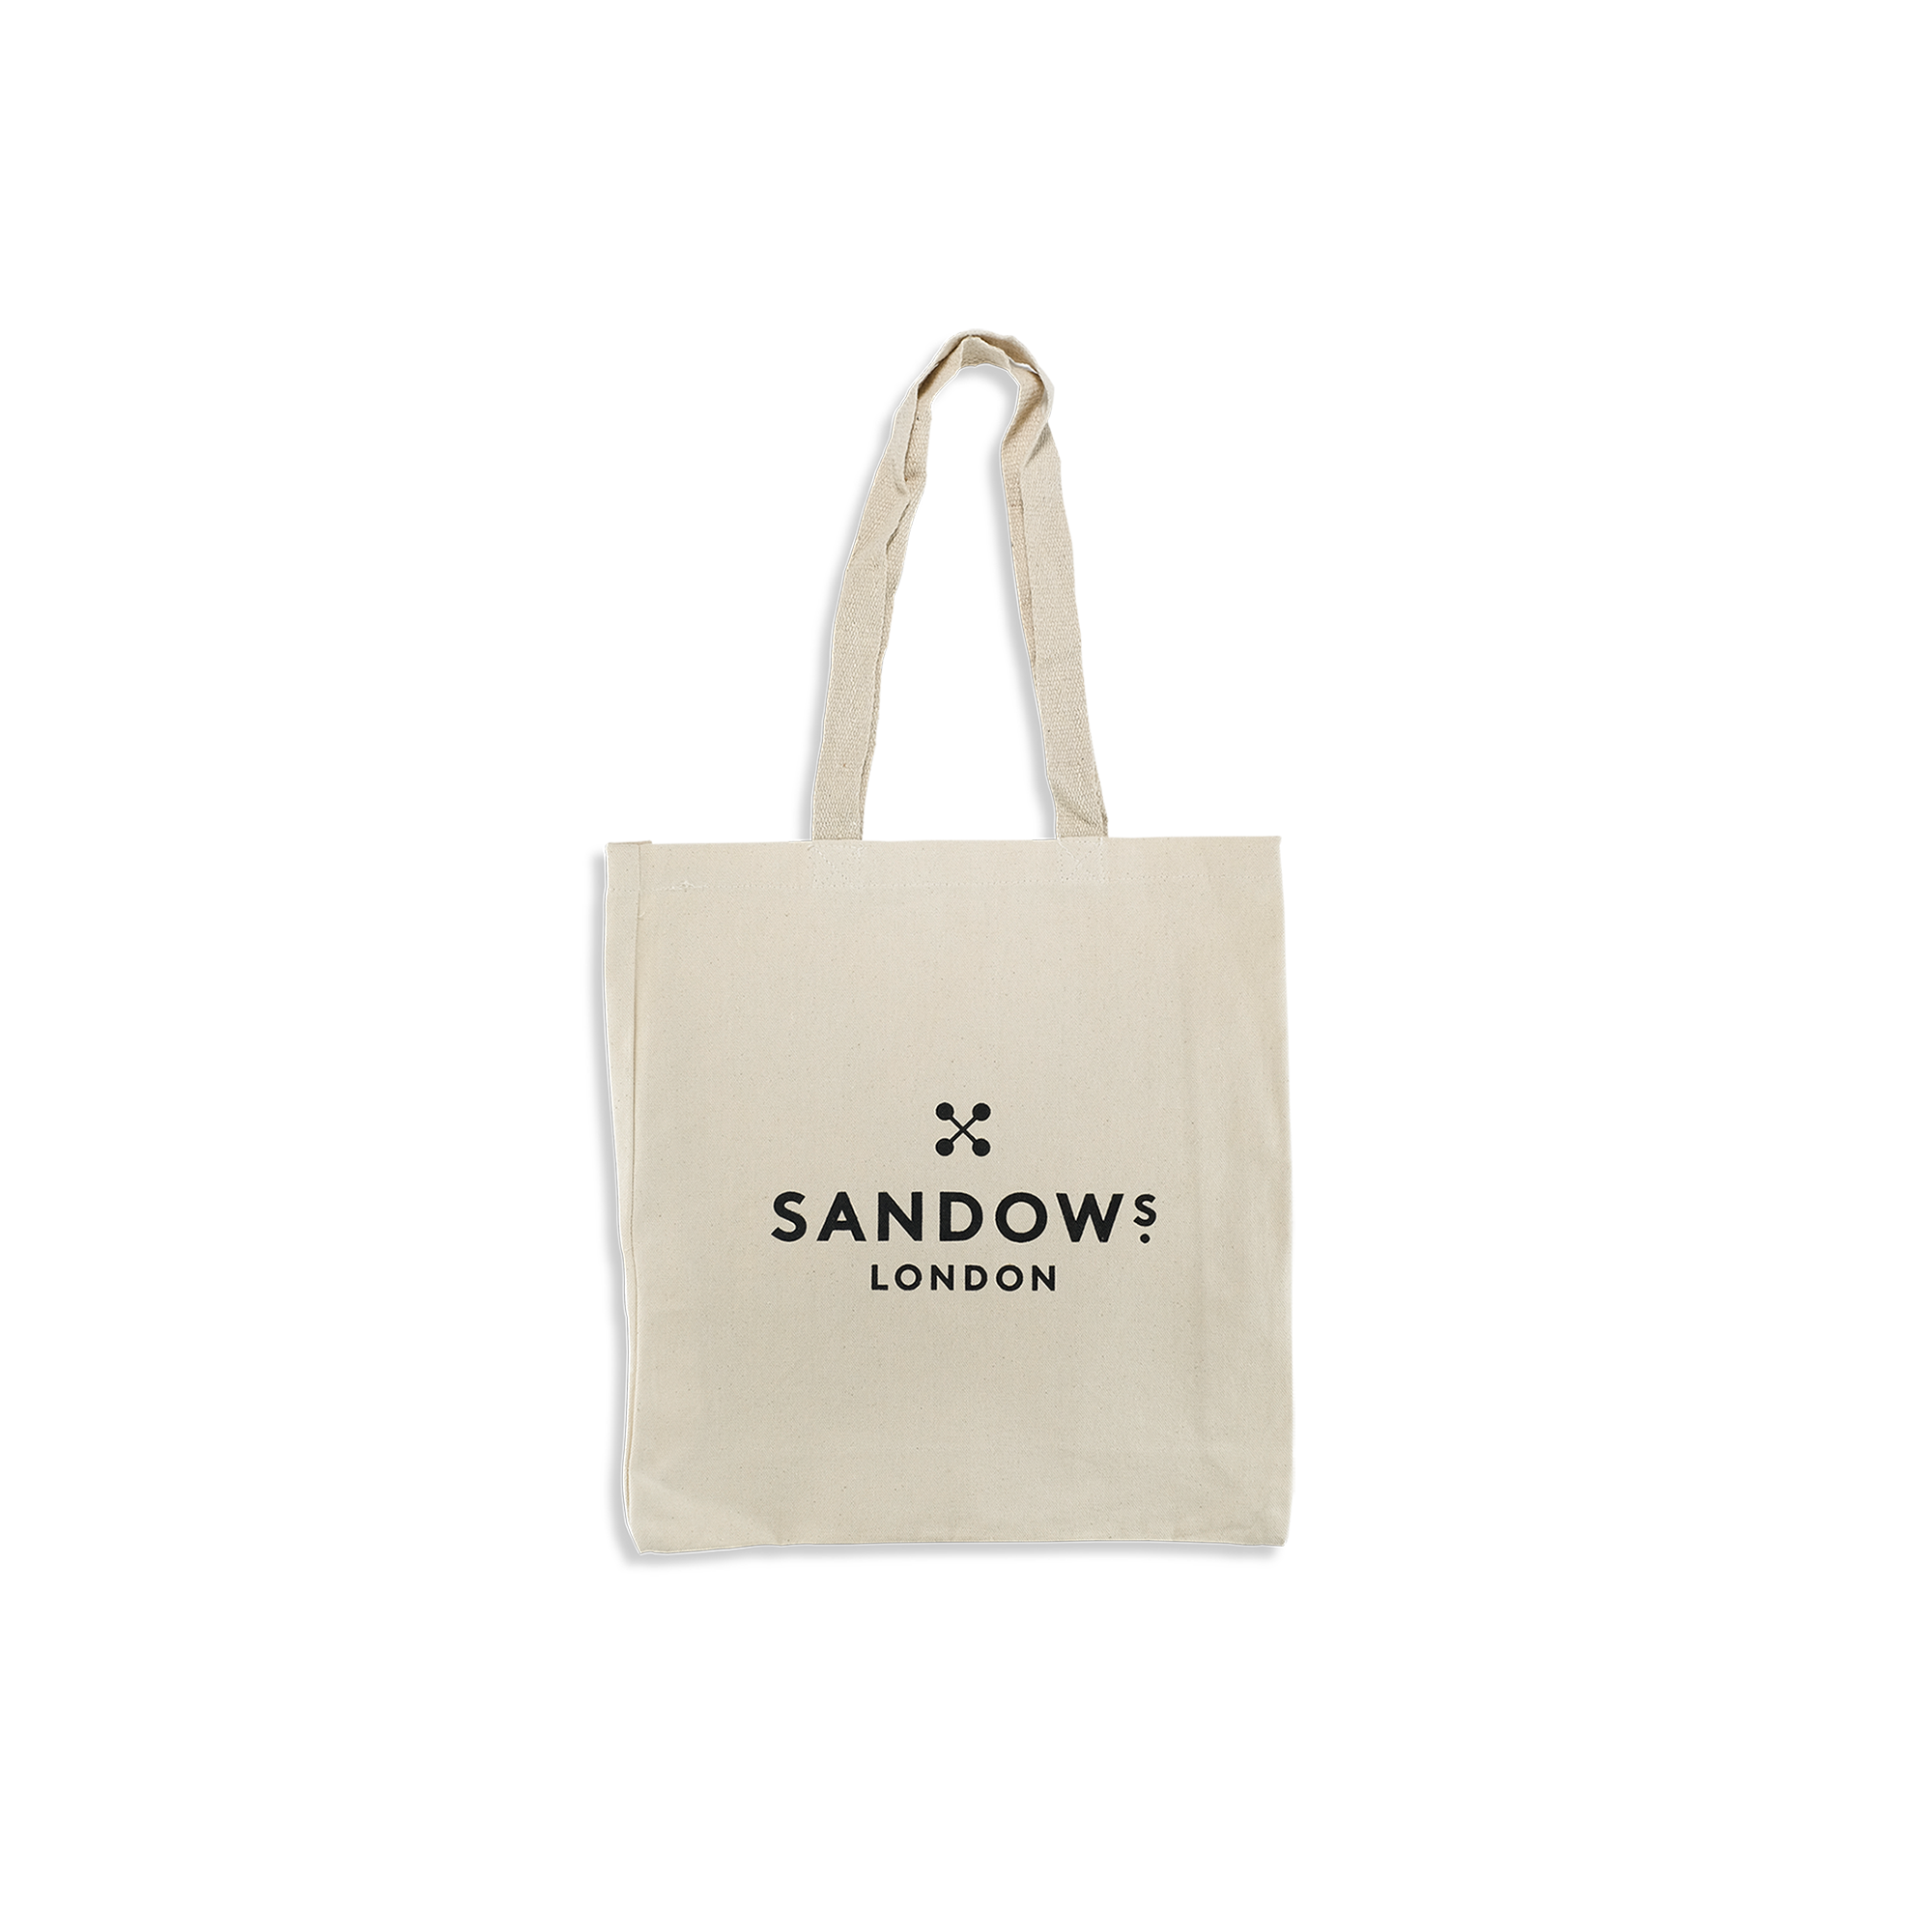 Sandows Tote Bag